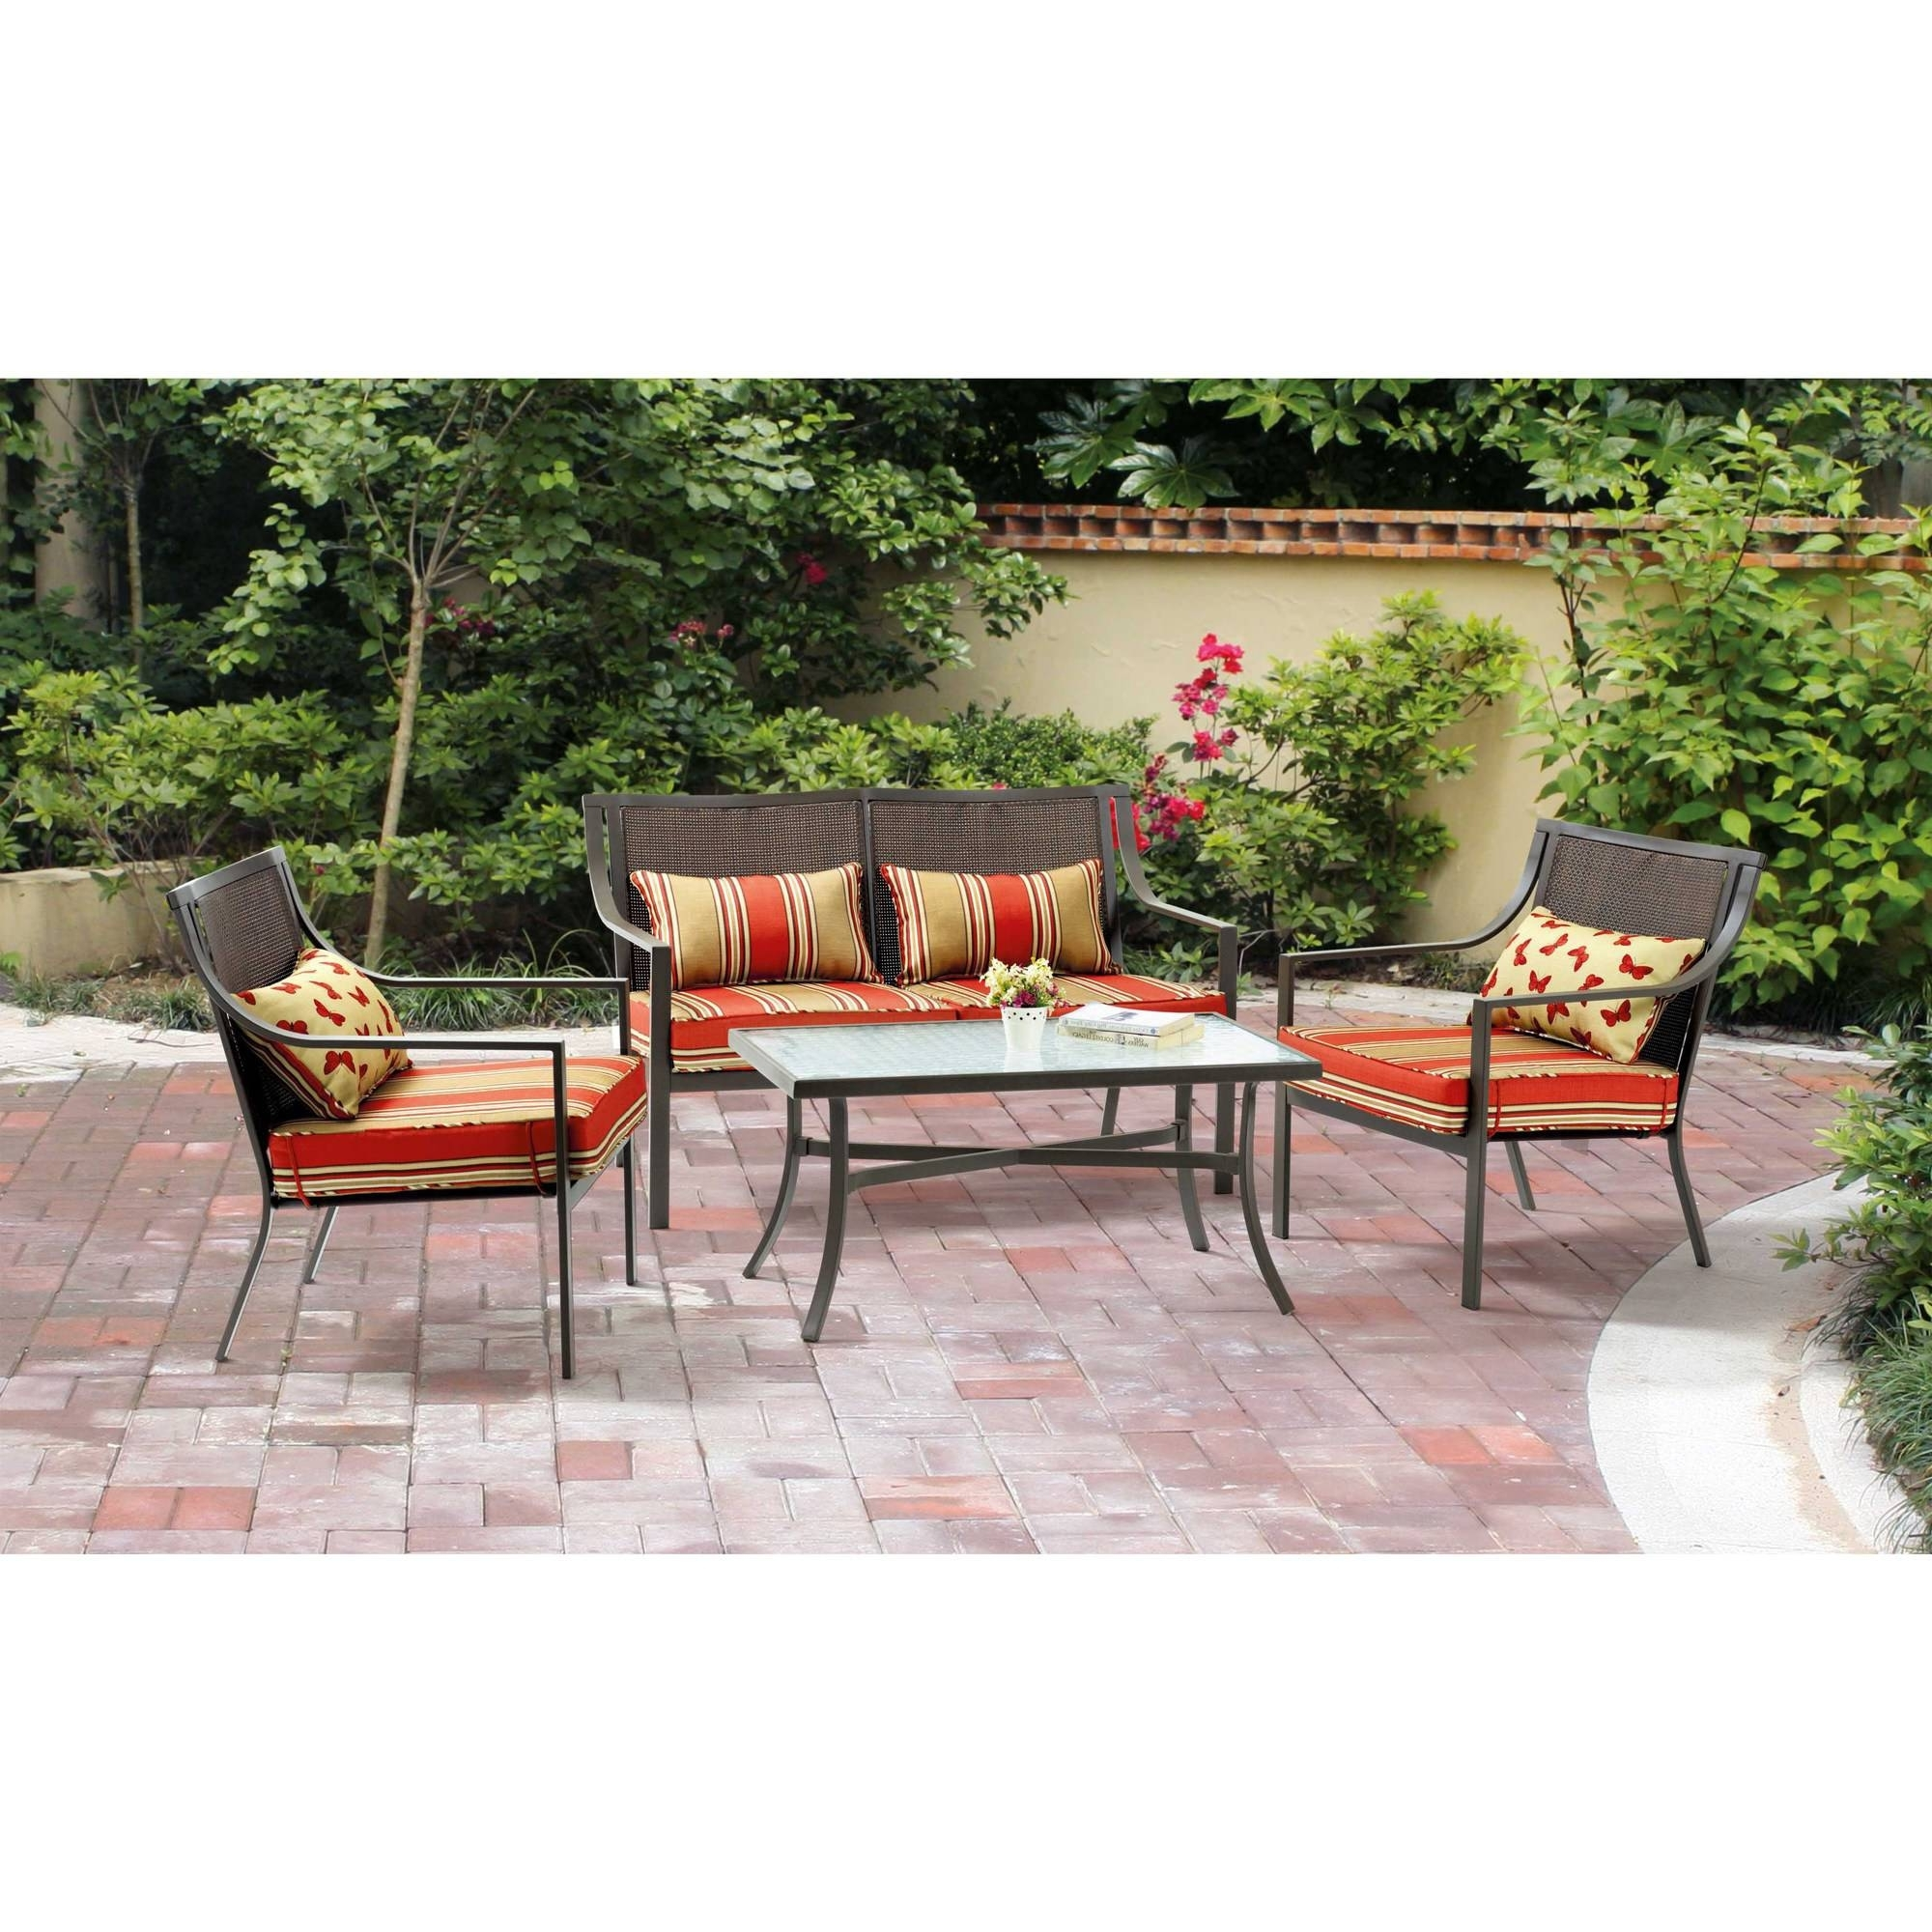 Baner Garden Outdoor Furniture Complete Patio Pe Wicker Rattan With Regard To 2019 Jewel Patio Umbrellas (Gallery 8 of 20)